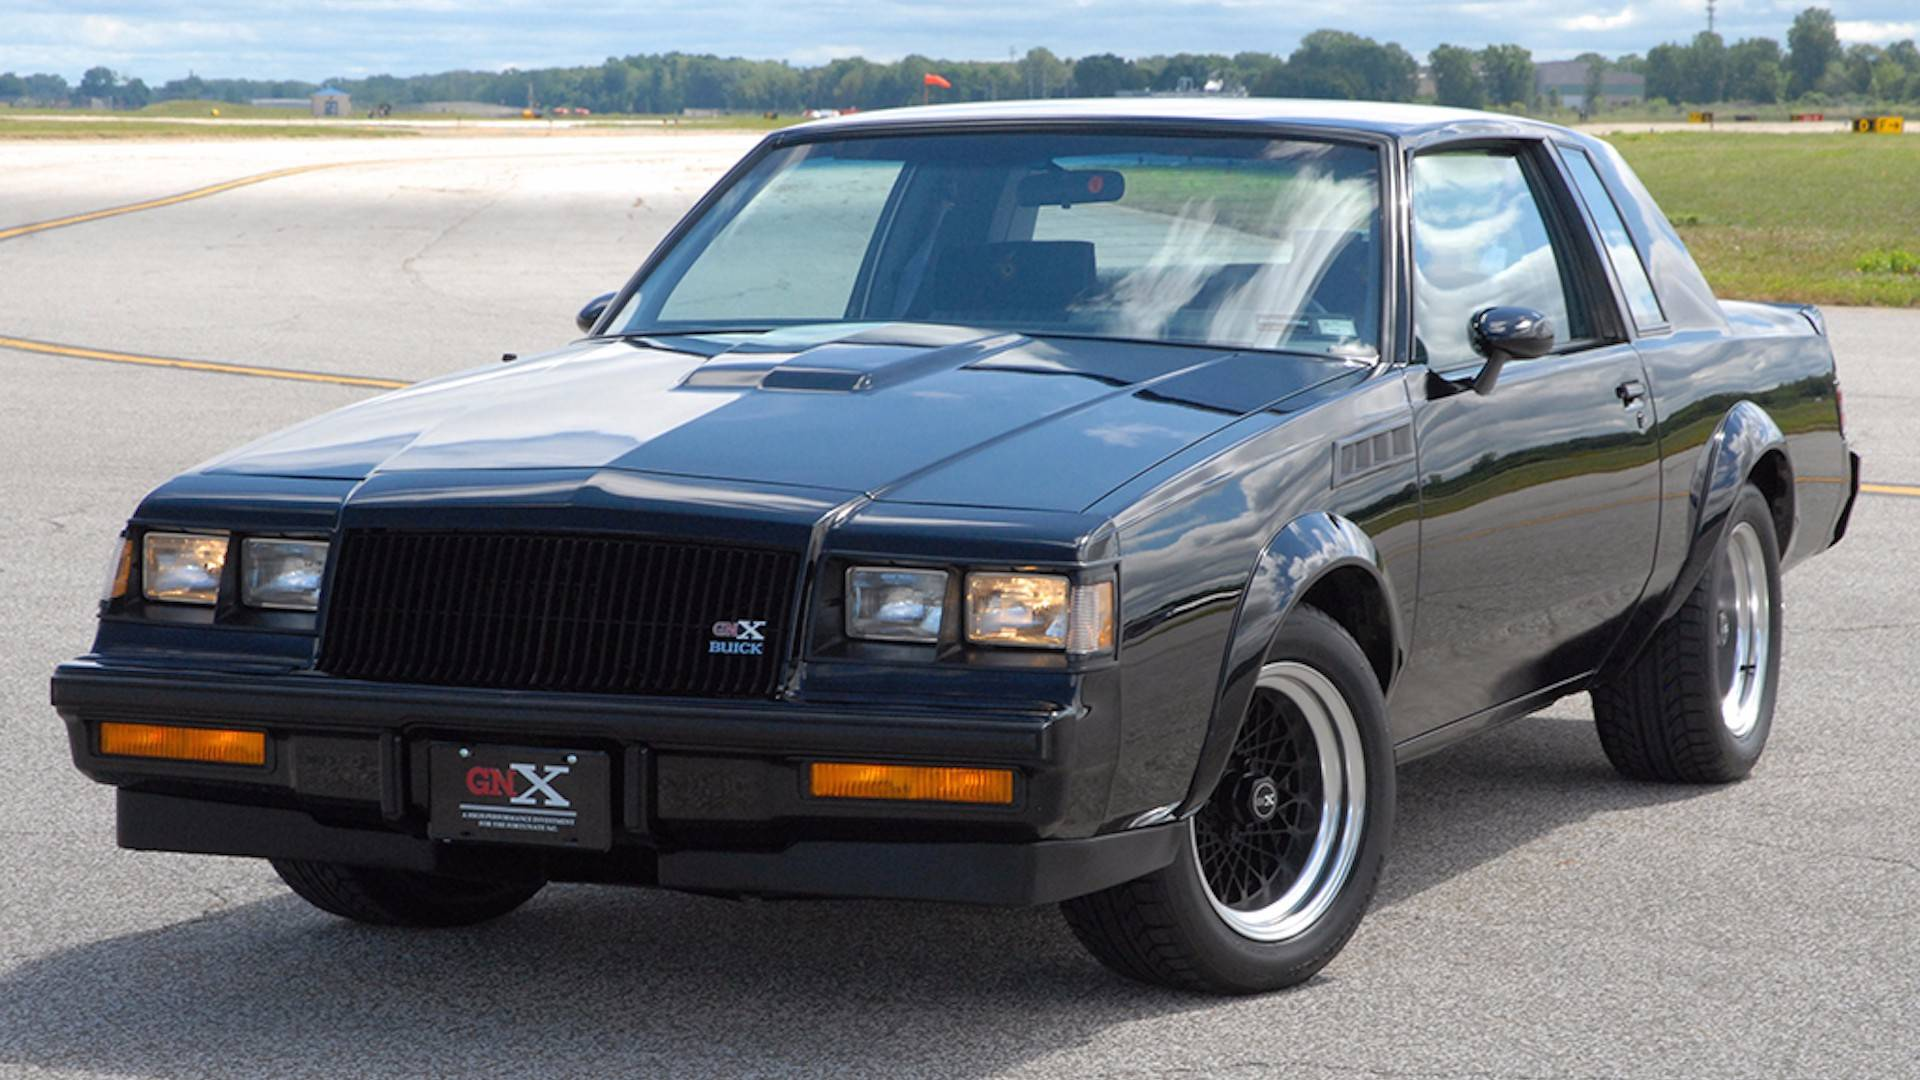 Buick Grand National Gnx For Sale >> The First Buick Gnx Is For Sale Bring Tons Of Money